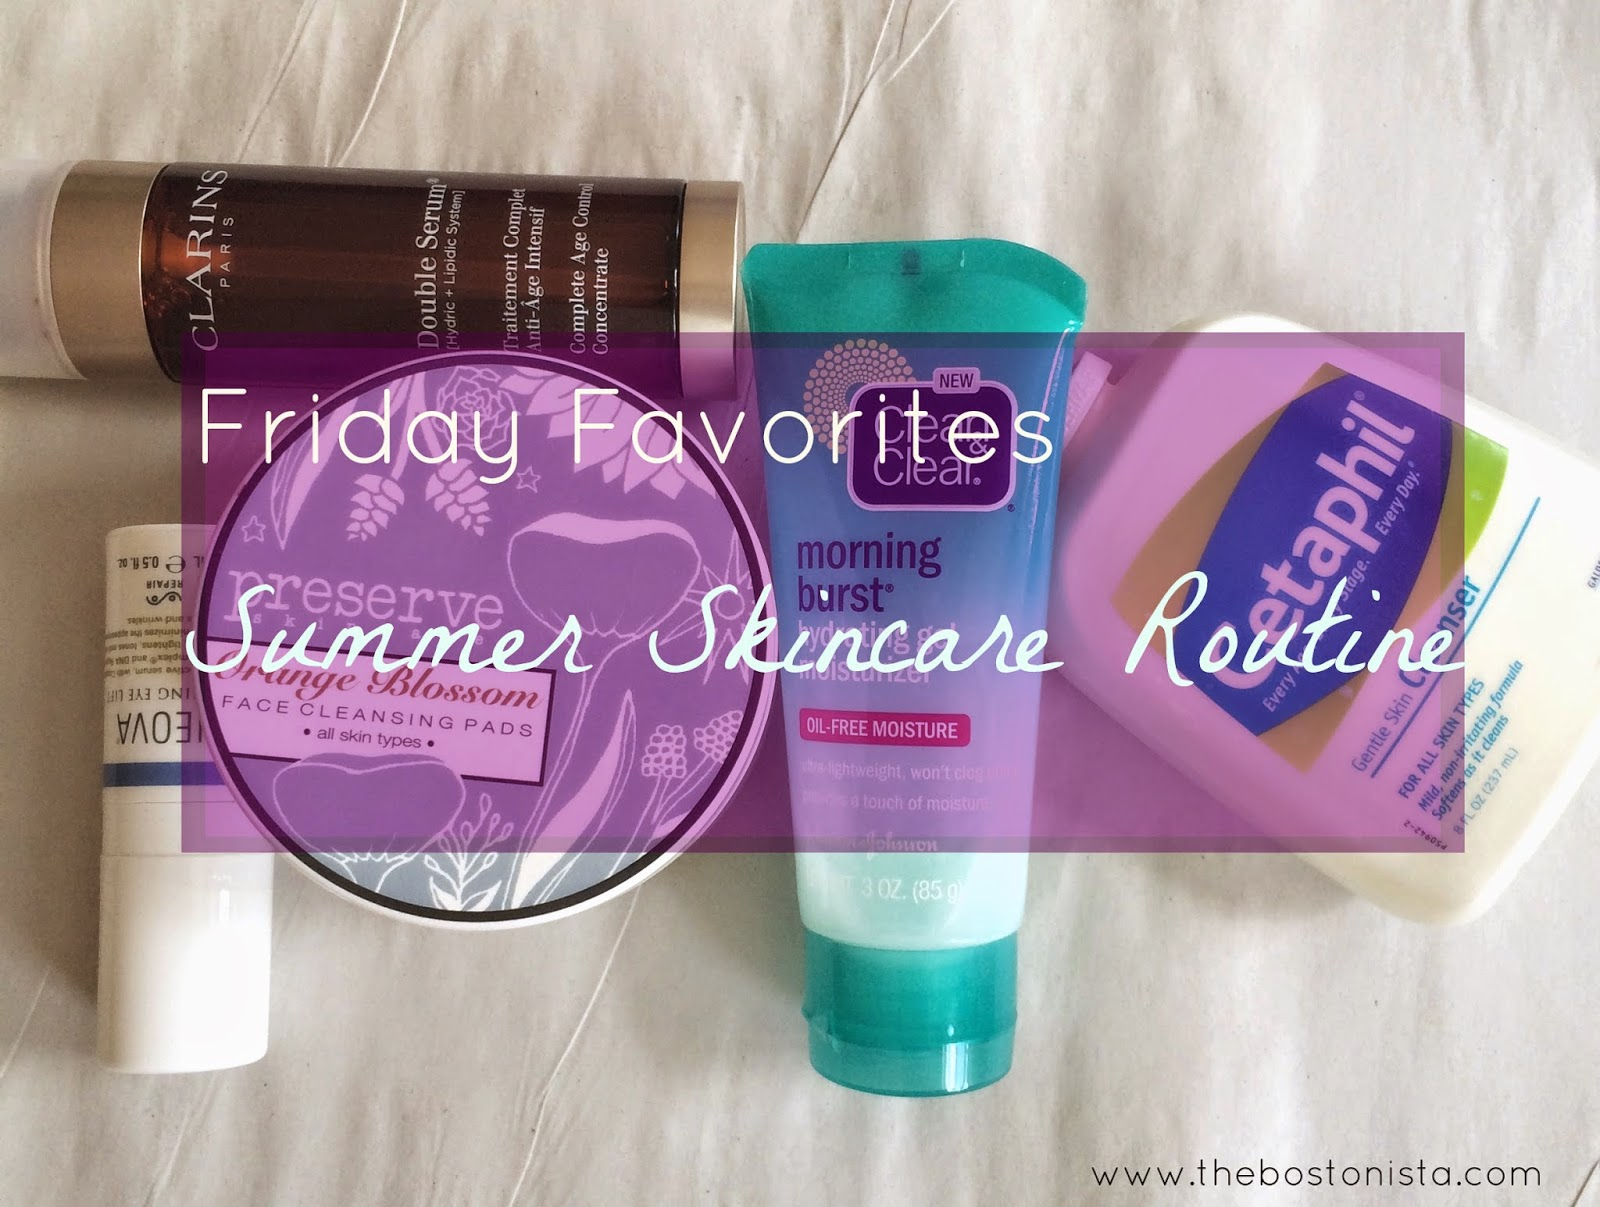 Friday Favorites, Friday Faves, Skincare, Skin Care, Simple Summer Skincare, Summer Skincare, Step by Step Skincare Guide, Beauty, Boston, Boston Fashion, Boston Beauty, Boston Beauty Blogger, Boston Fashion Blogger, Boston Fashion Blog, Clarins Double Serum. Clean and Clear Gel Moisturizer, Gel Moisturizers, Oil Free Moisturizers, Cetaphil, Preserve Skincare